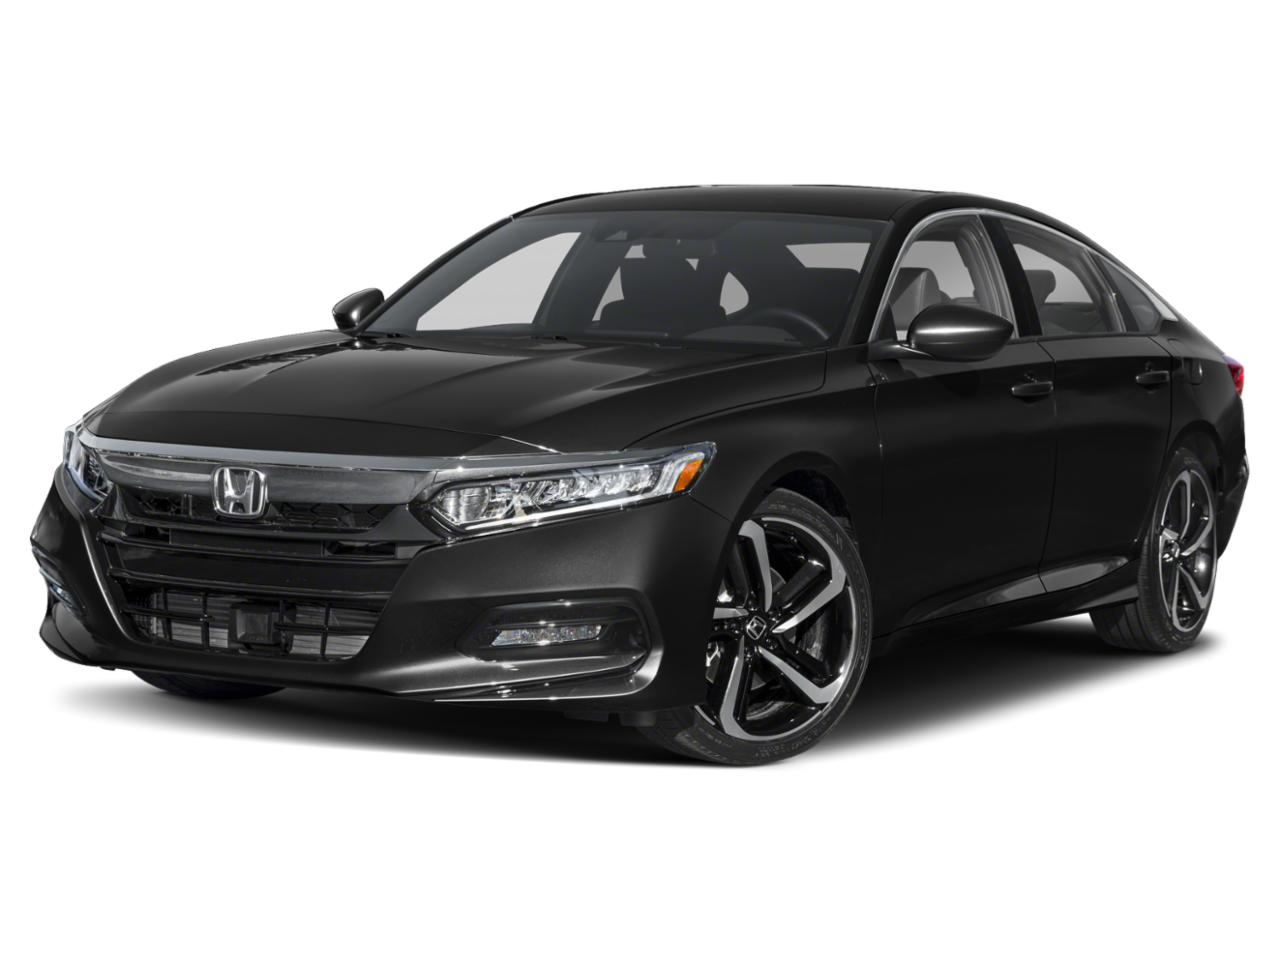 2019 Honda Accord Sedan Vehicle Photo in Nashua, NH 03060